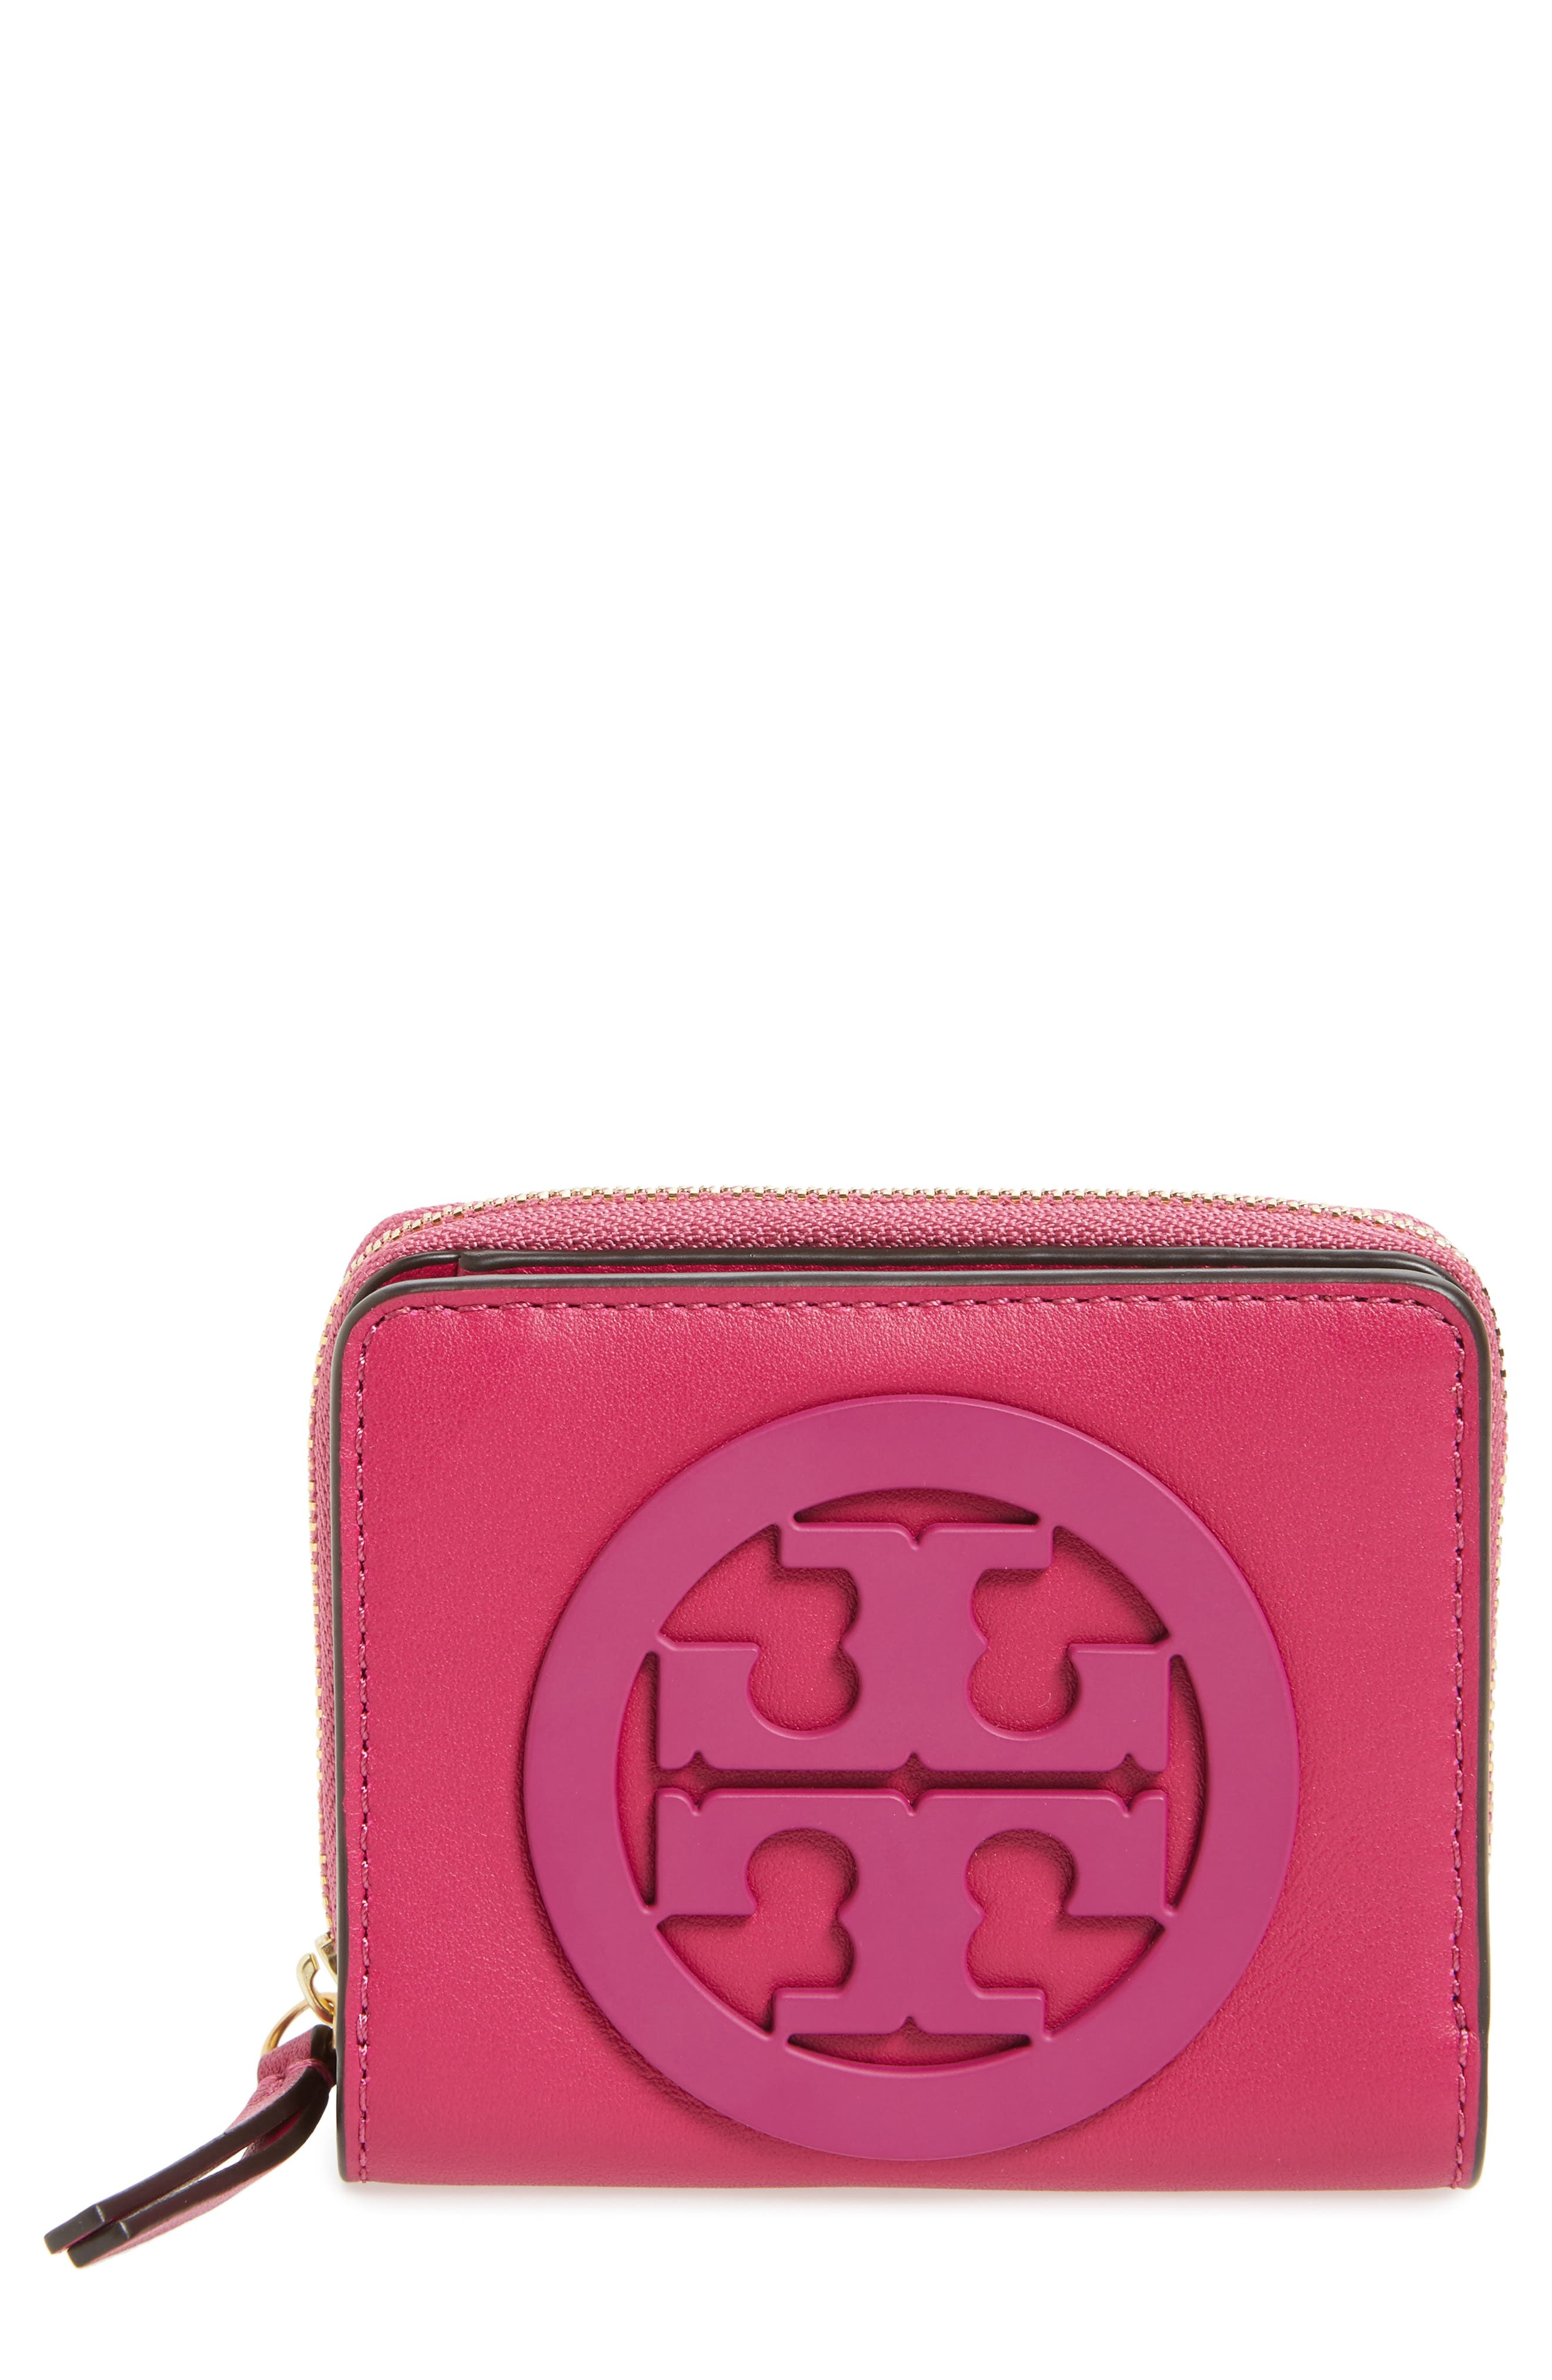 Mini Charlie Leather Wallet,                         Main,                         color, Party Fuchsia